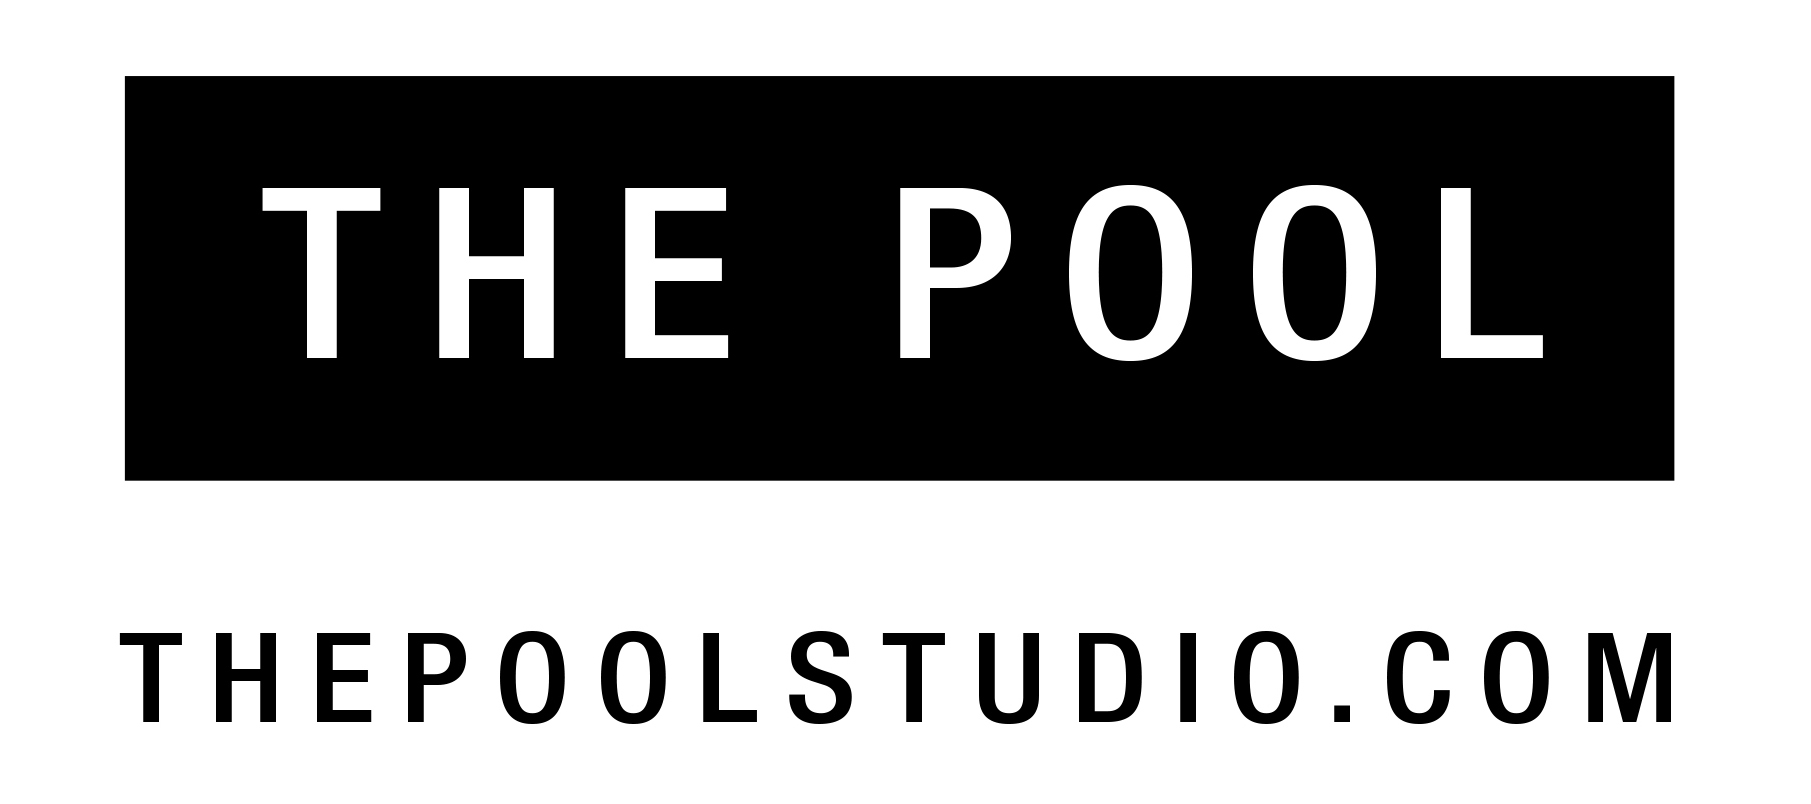 The Pool Studio Web